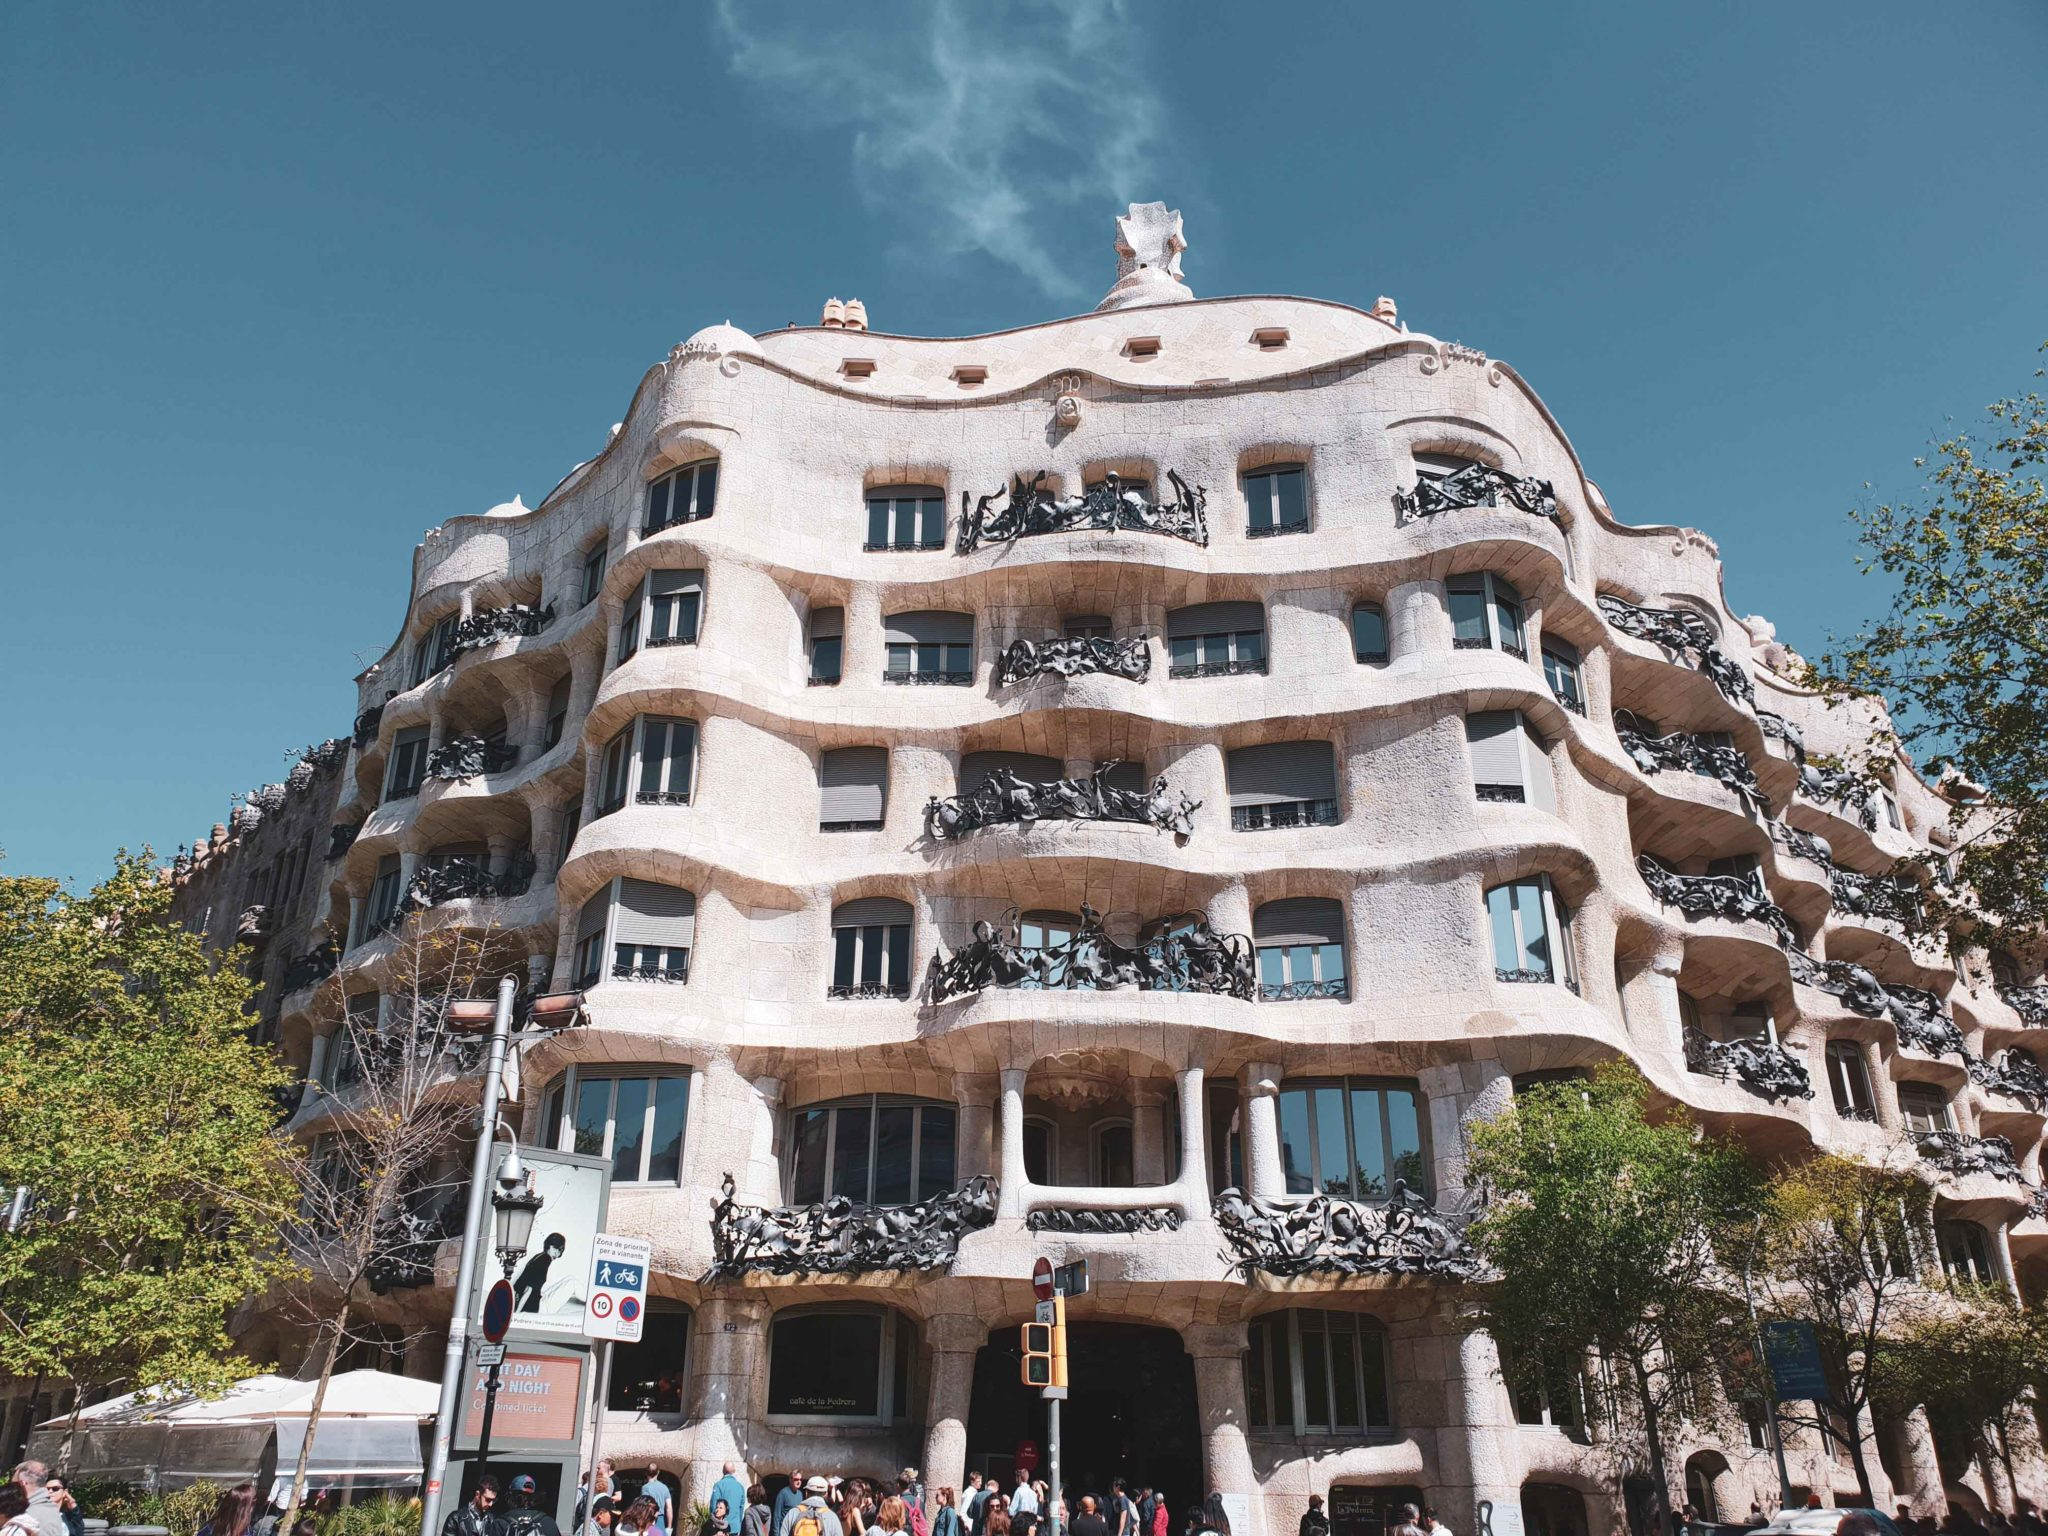 Barcelona travel guide by Michaella and Lina from Bulgarian lifestyle blog Quite a Looker / La Pedrera